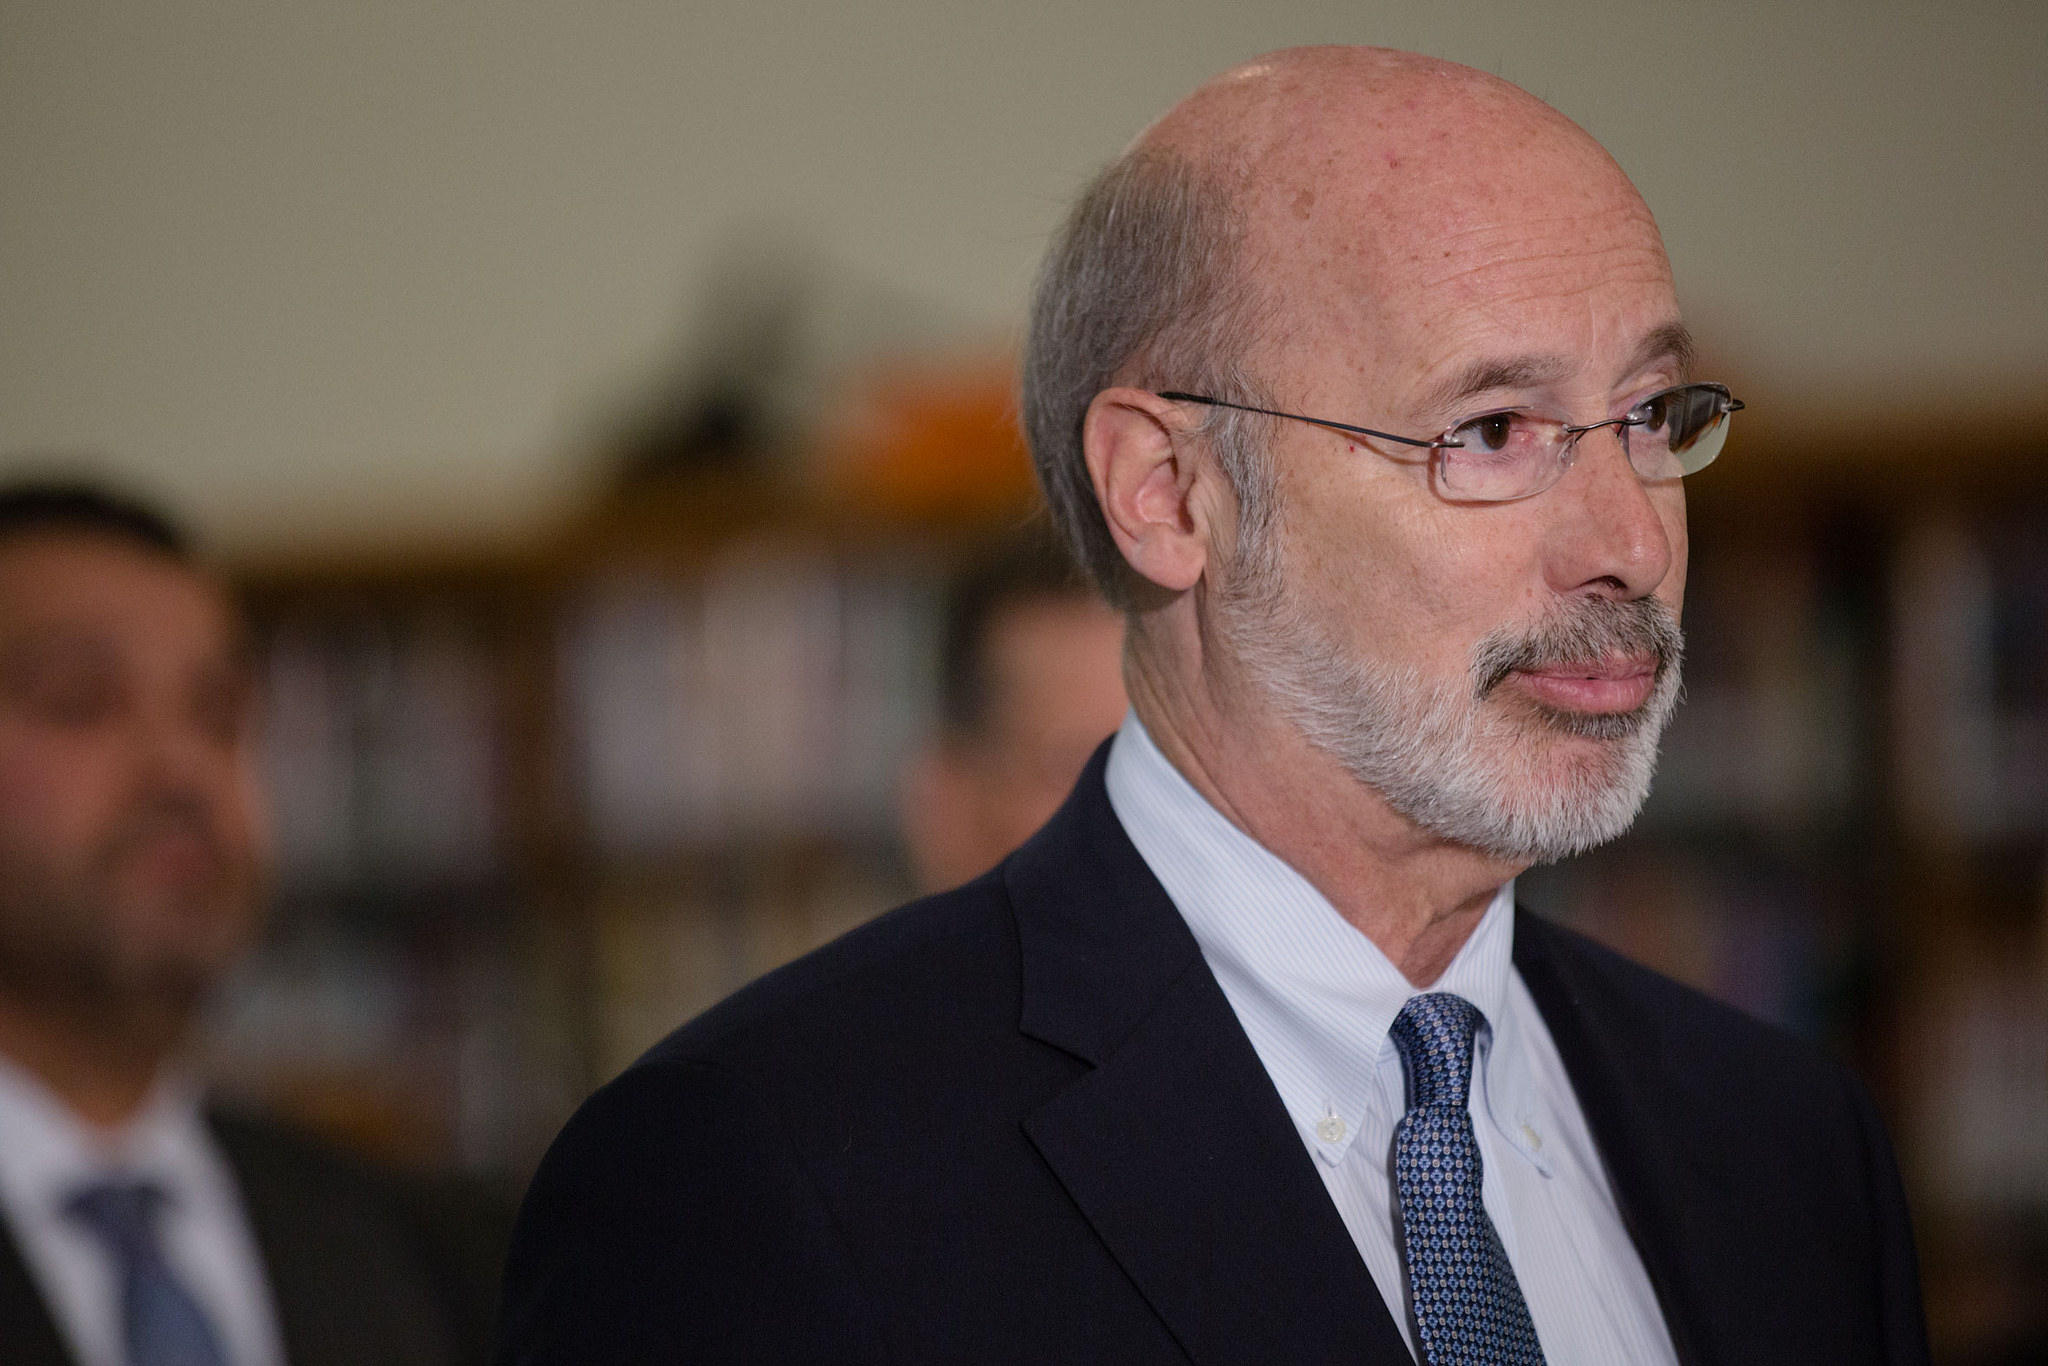 Pa.'s credit rating lowered - again